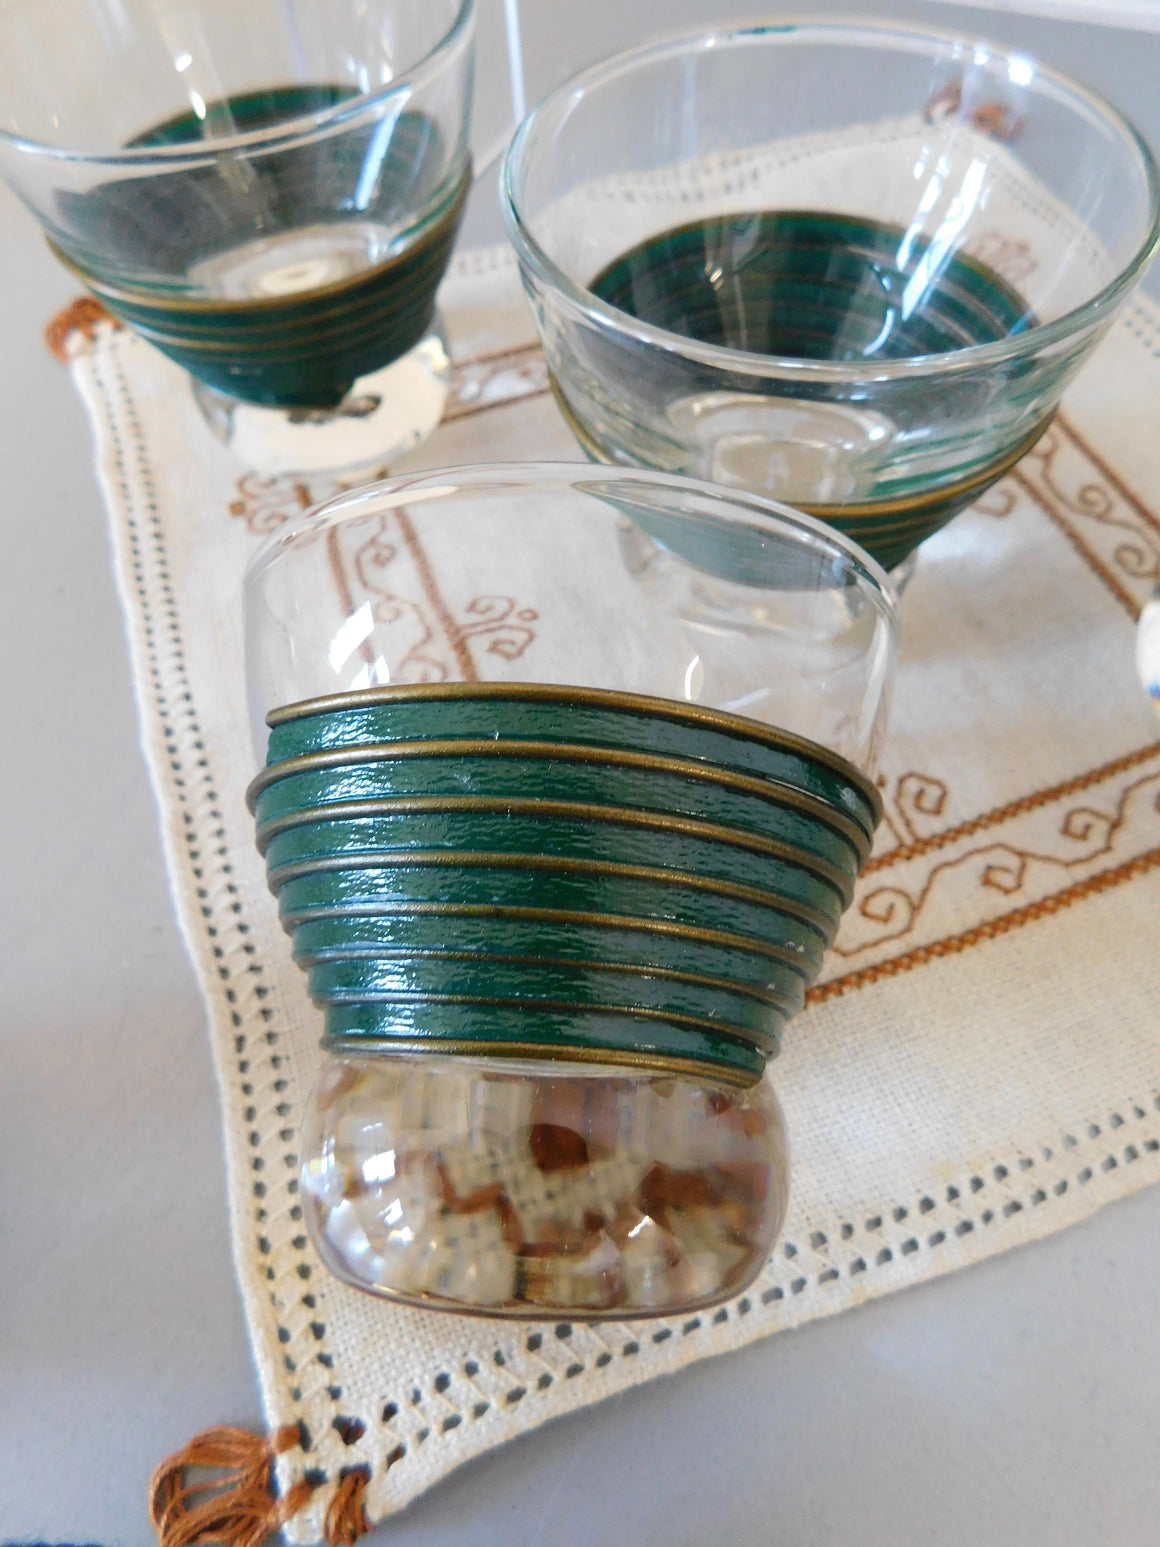 Sweet Heat Spirit Sipper w/ seven vintage metal wrapped cordial glasses circa 1950's